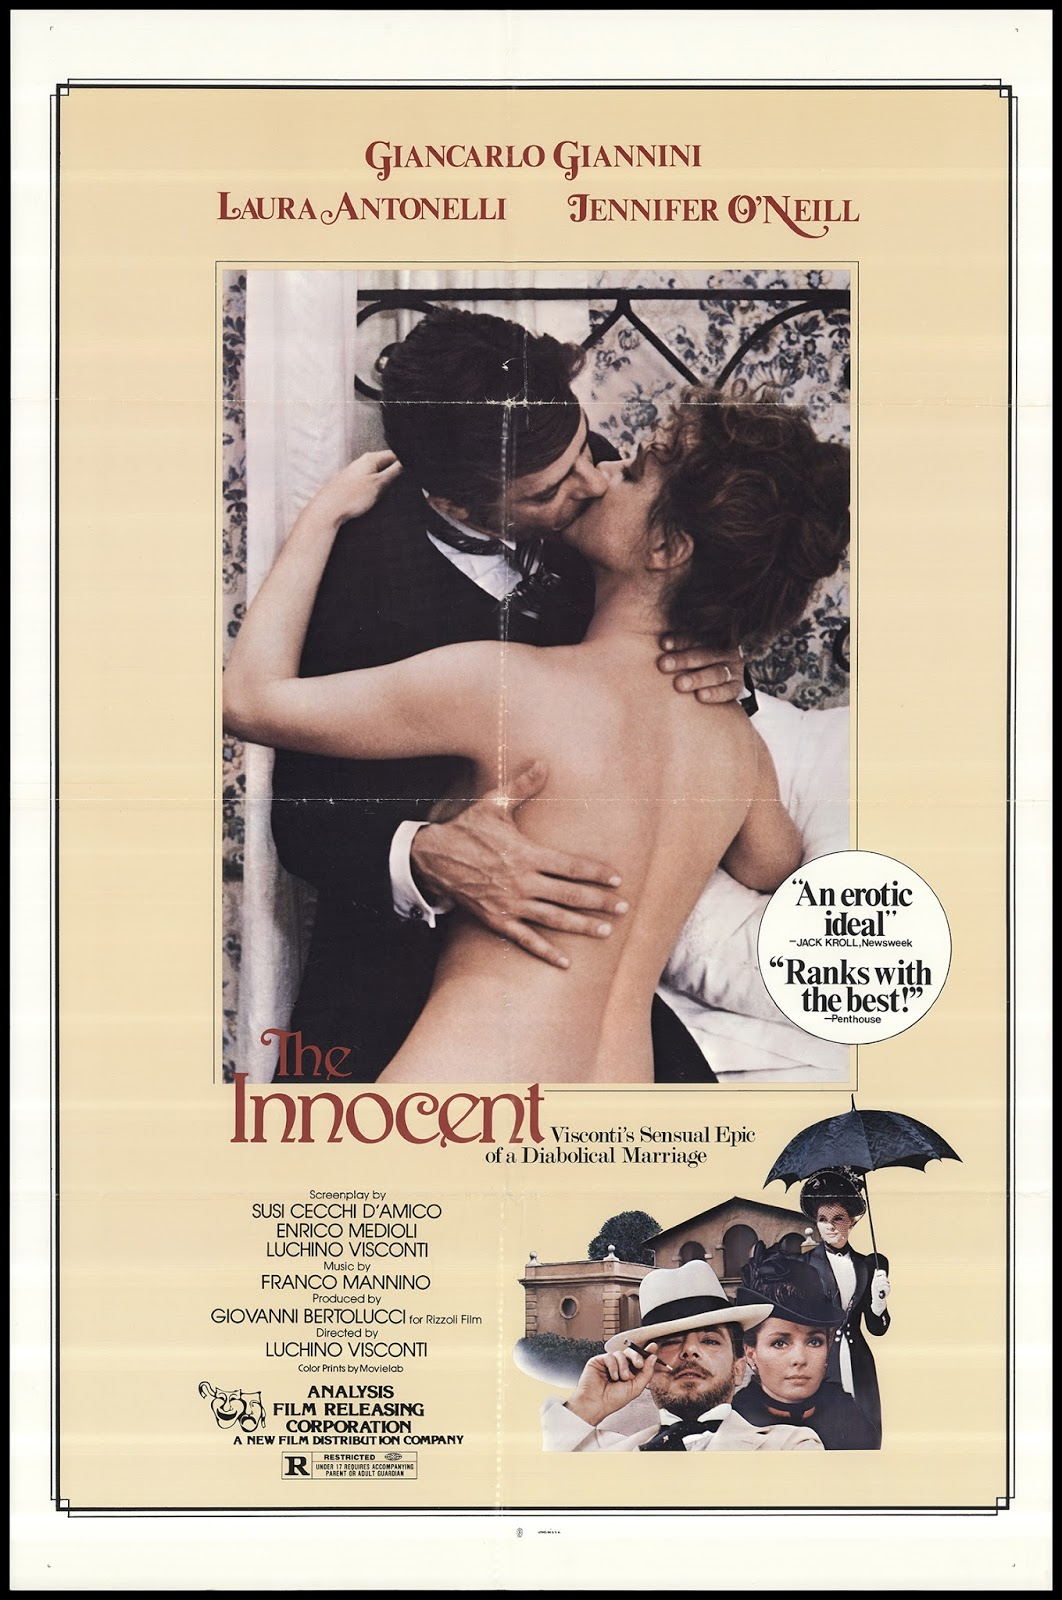 The Innocent 1976